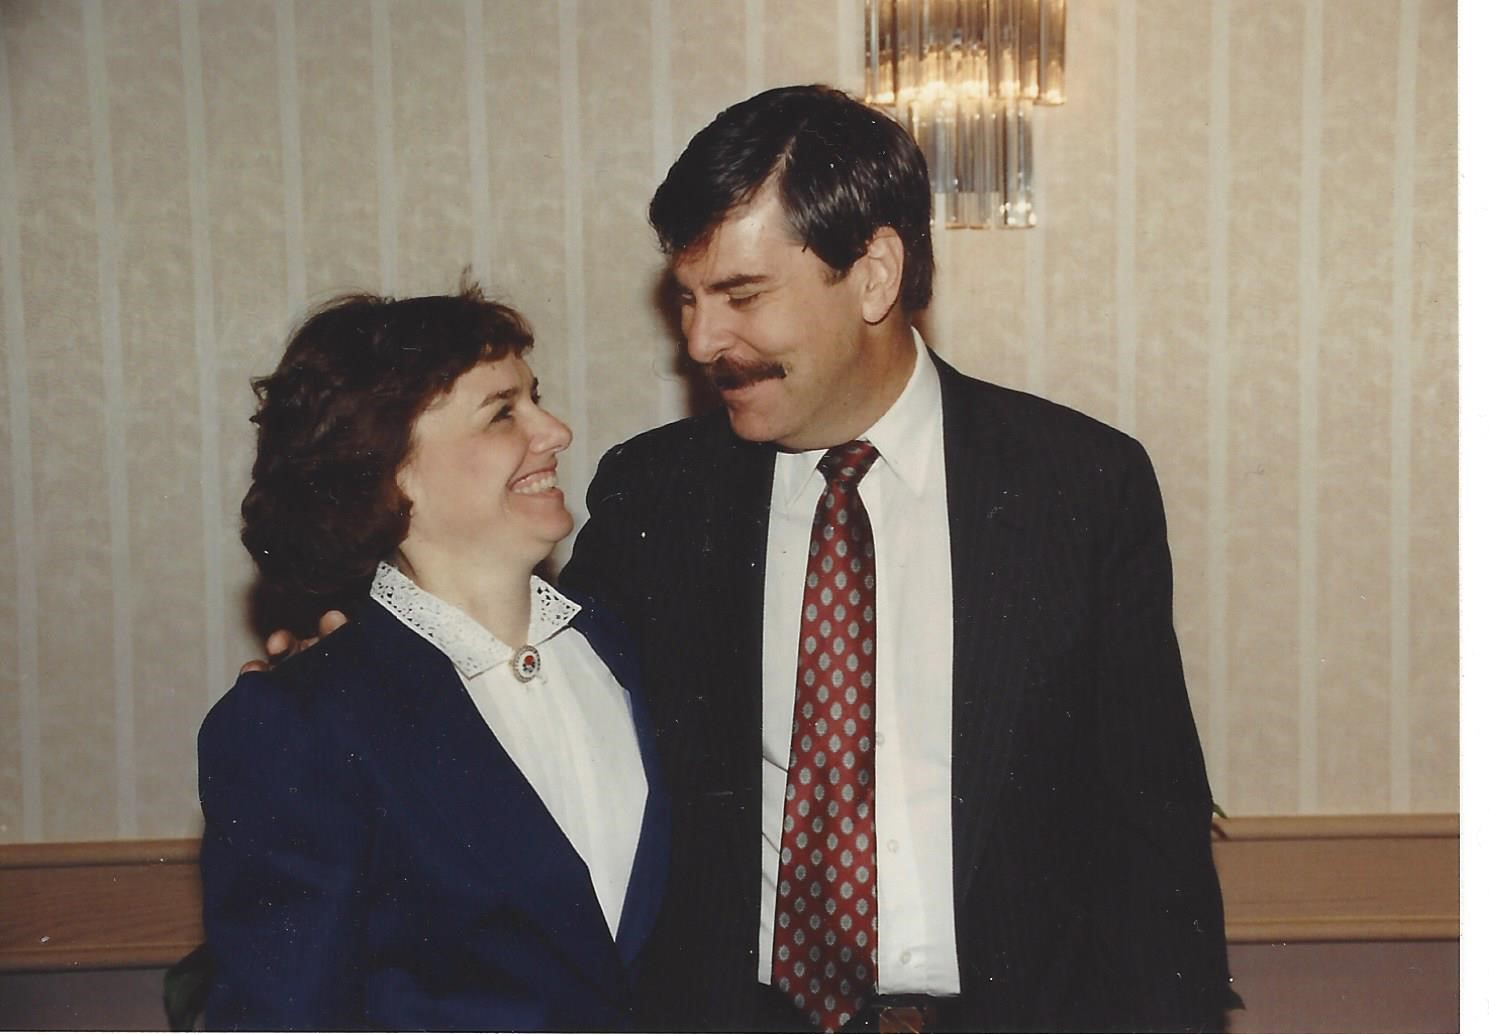 Catherine Bertini with Larry Love, Deputy Director of the Office of Family Assistance, Department of HHS (1988)